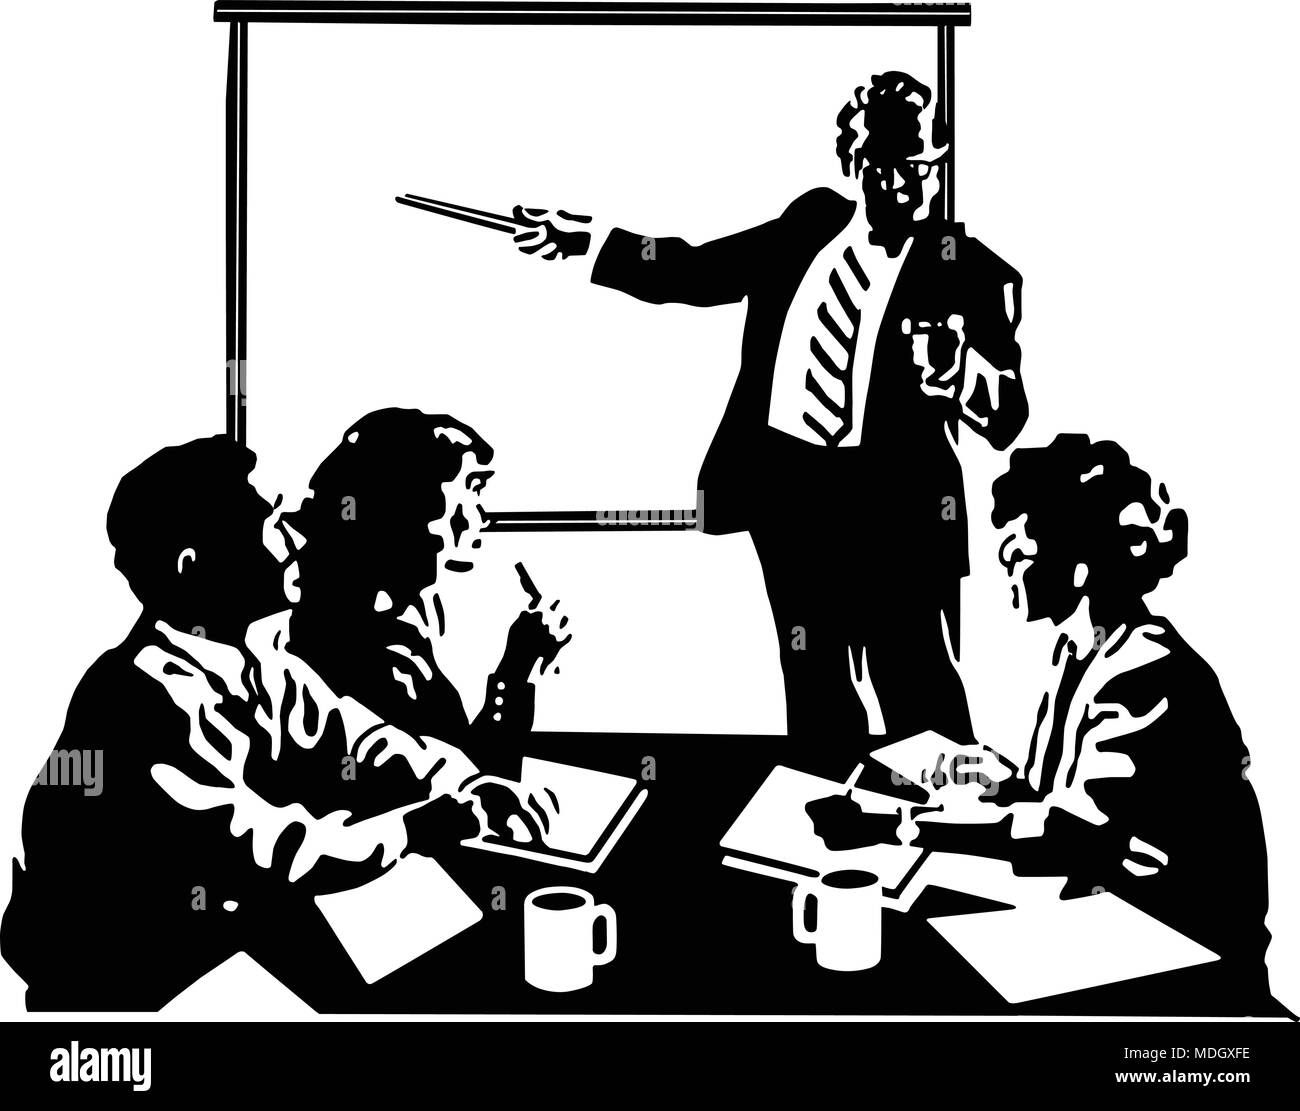 hight resolution of board meeting retro clipart illustration